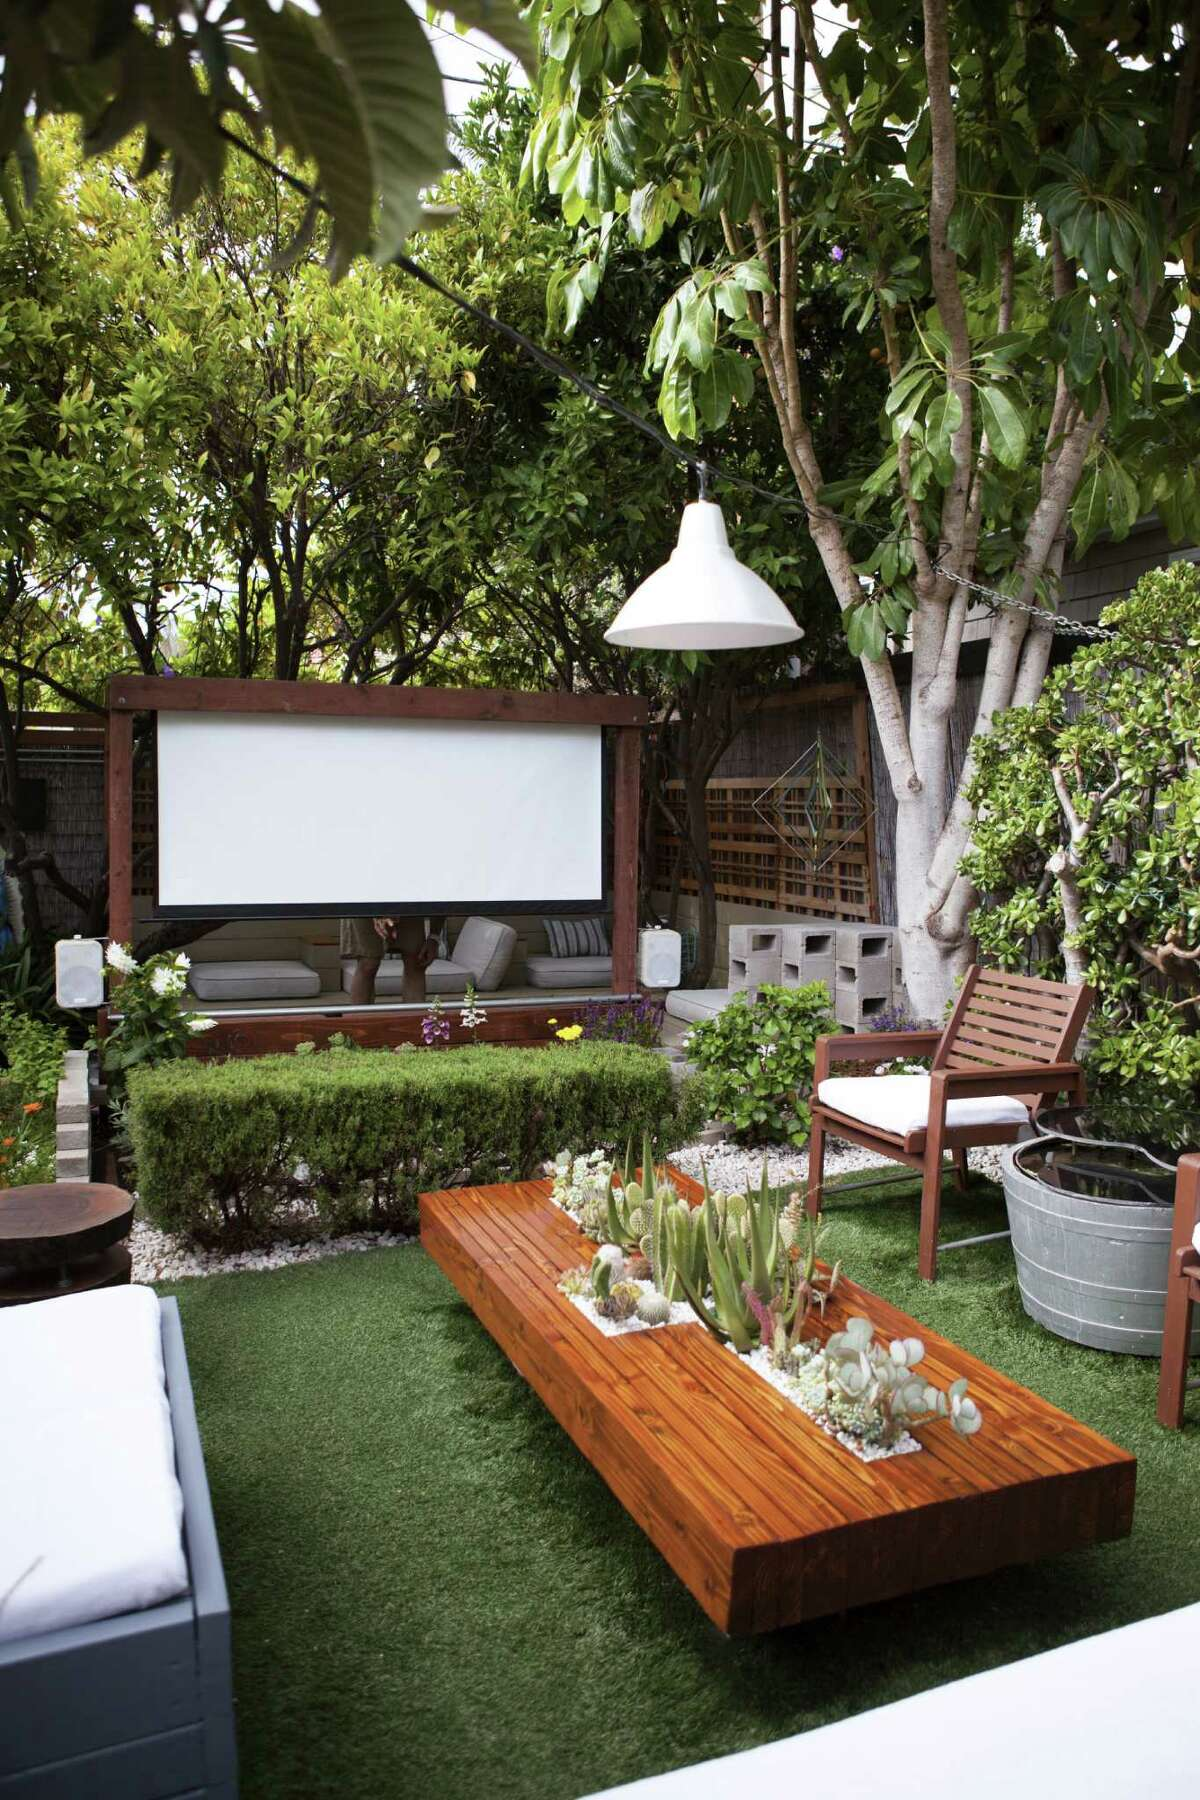 A 91-inch movie screen turns the garden of Gordon and husband Ryan Benoit into a home theater.